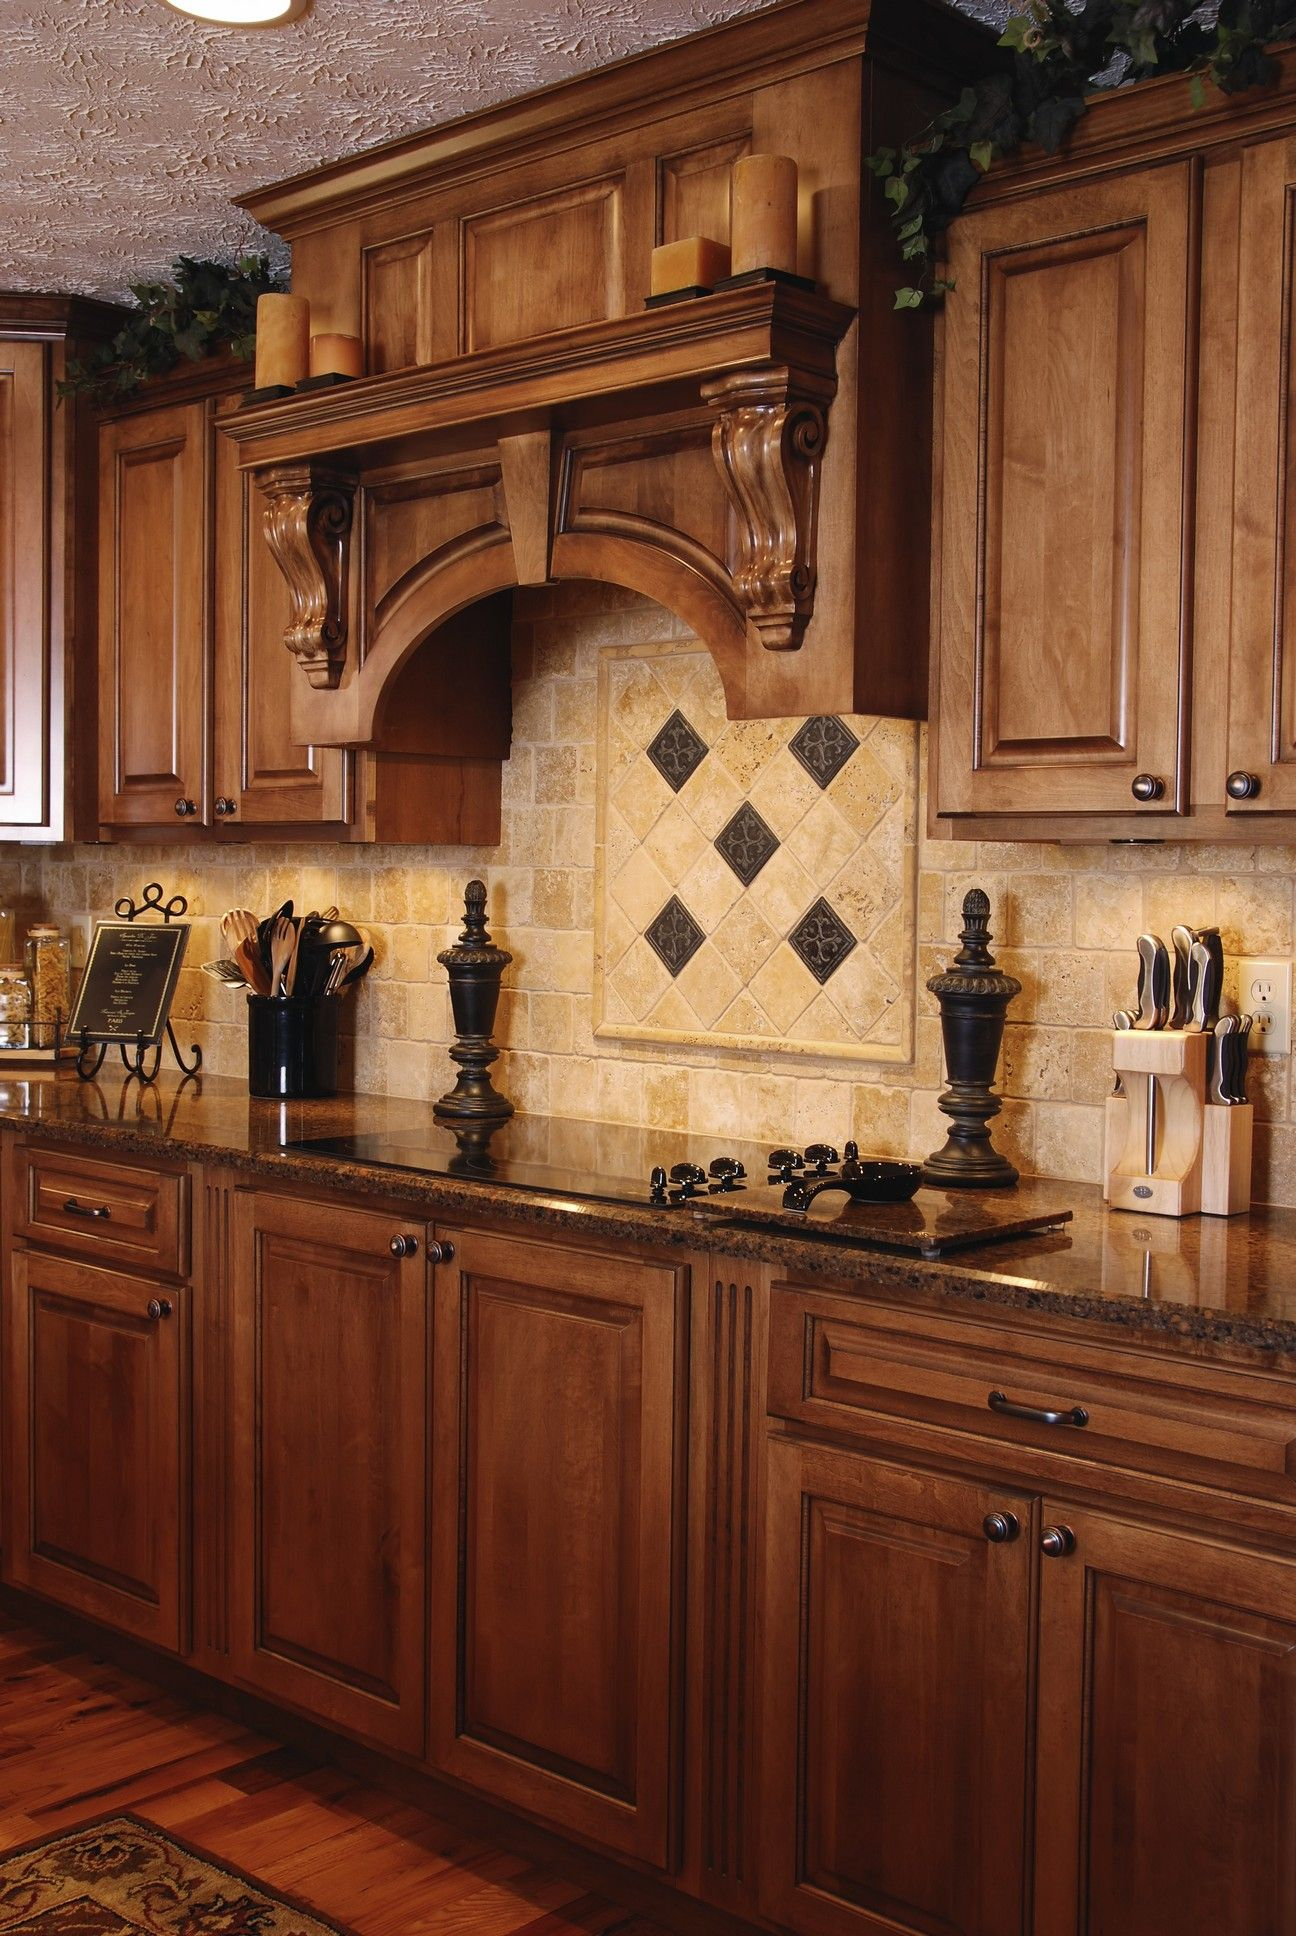 Find Your Kitchen Style! | Stock Cabinet Express